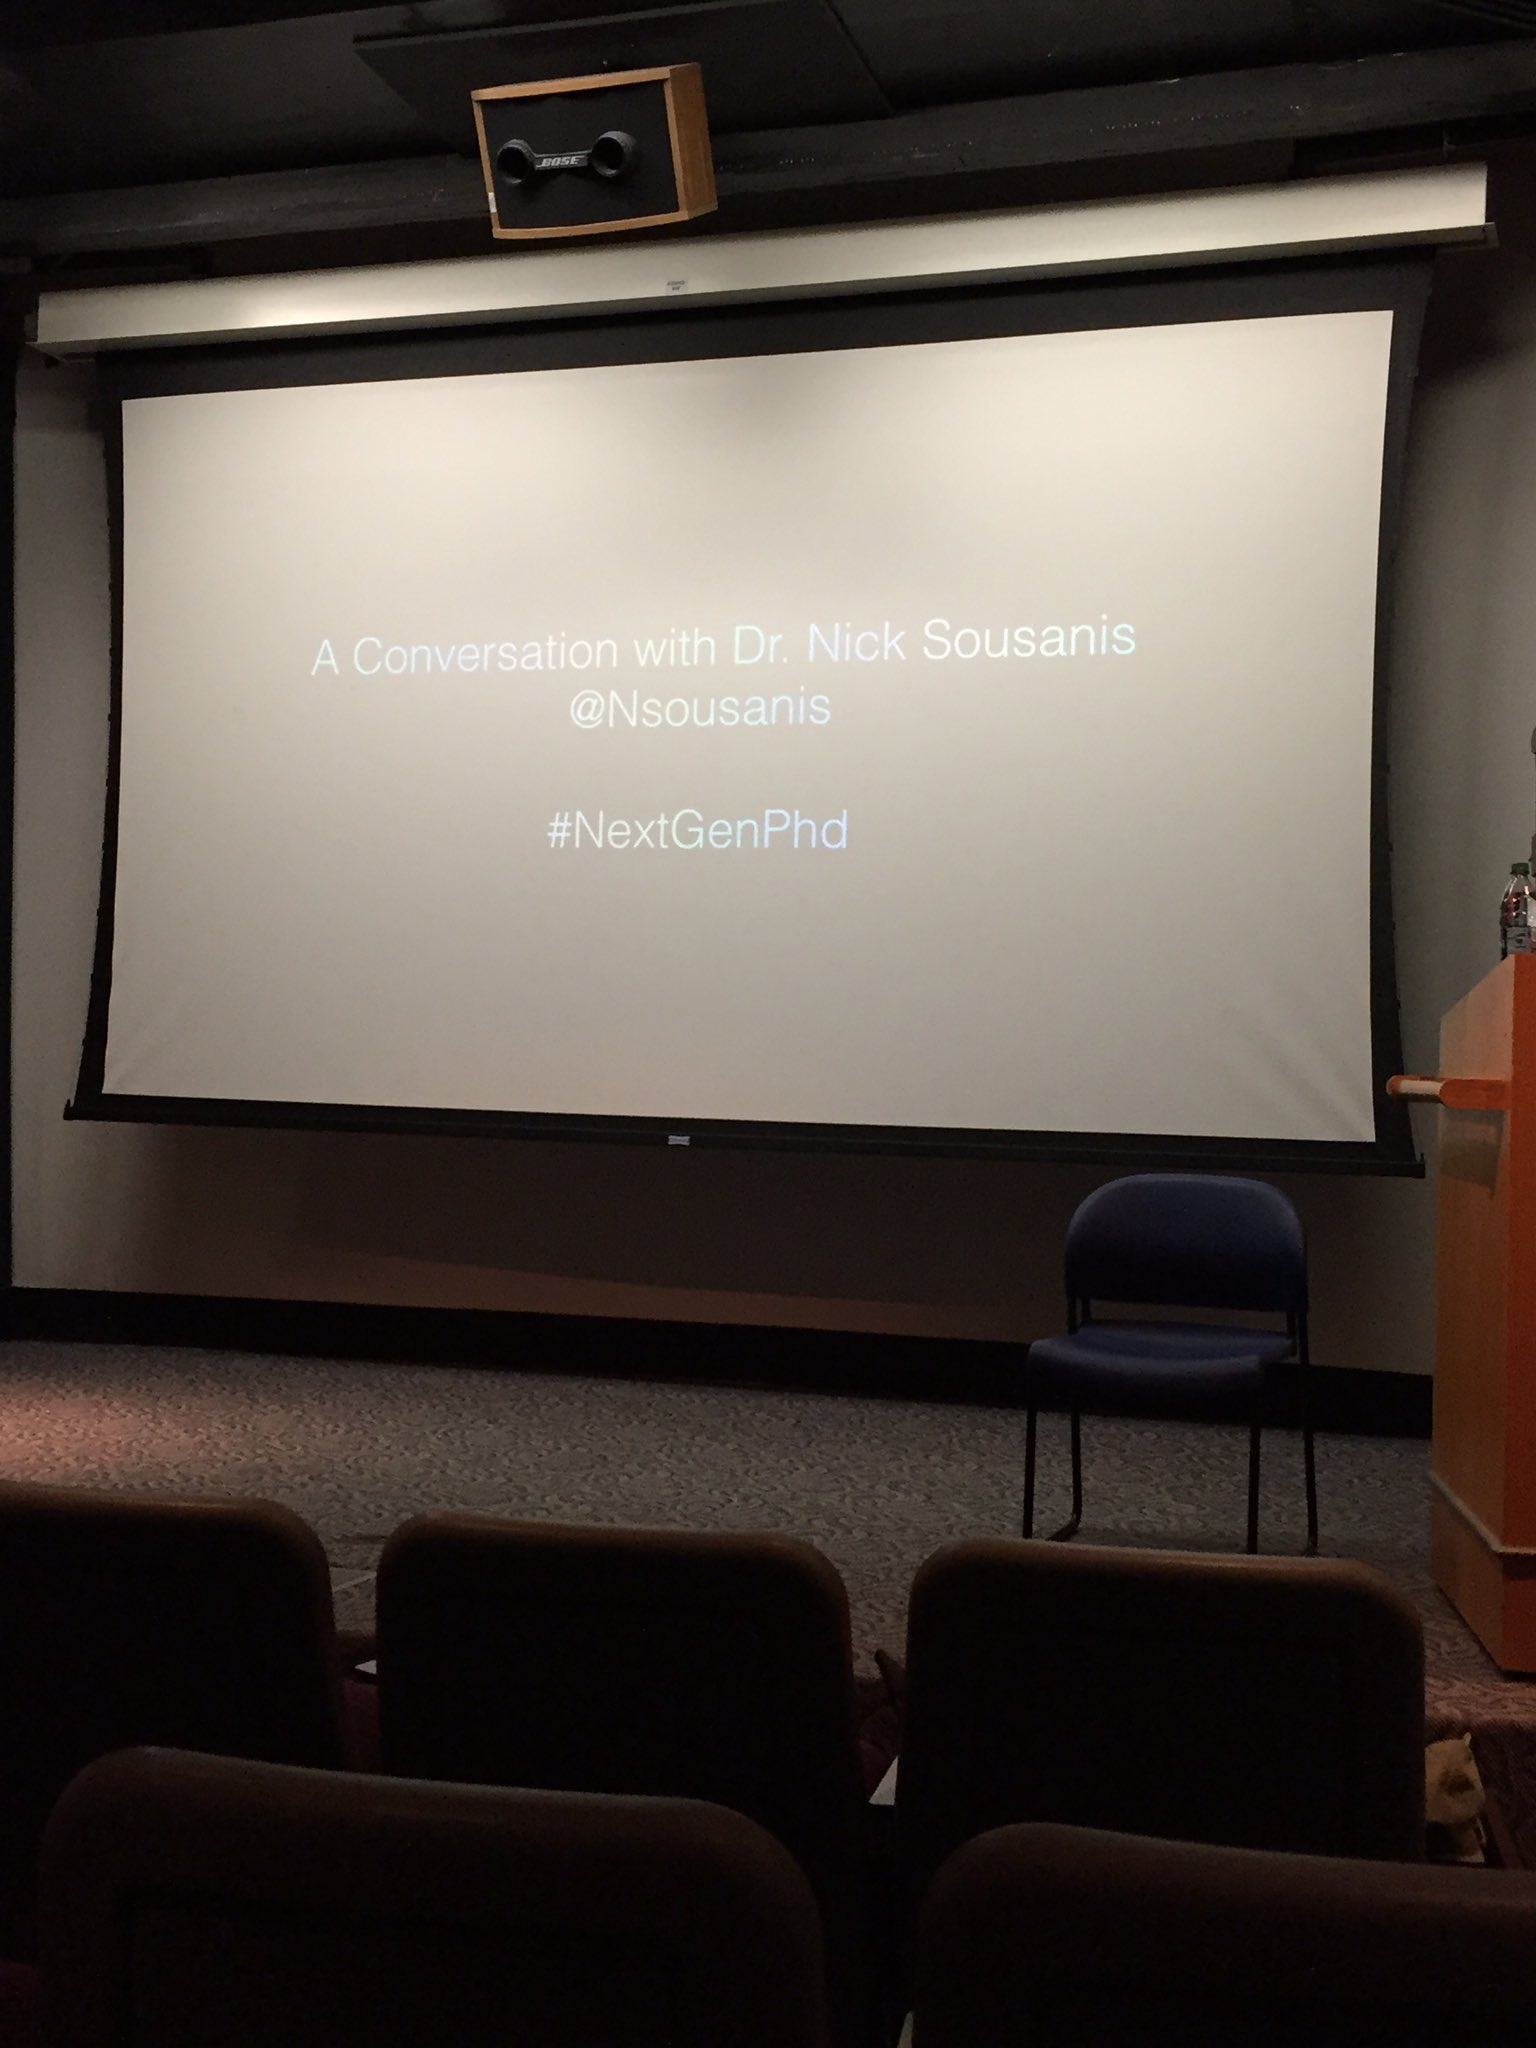 We're about to kick things off for #NextGenPhd w/ @Nsousanis! https://t.co/Vg95BRADCc